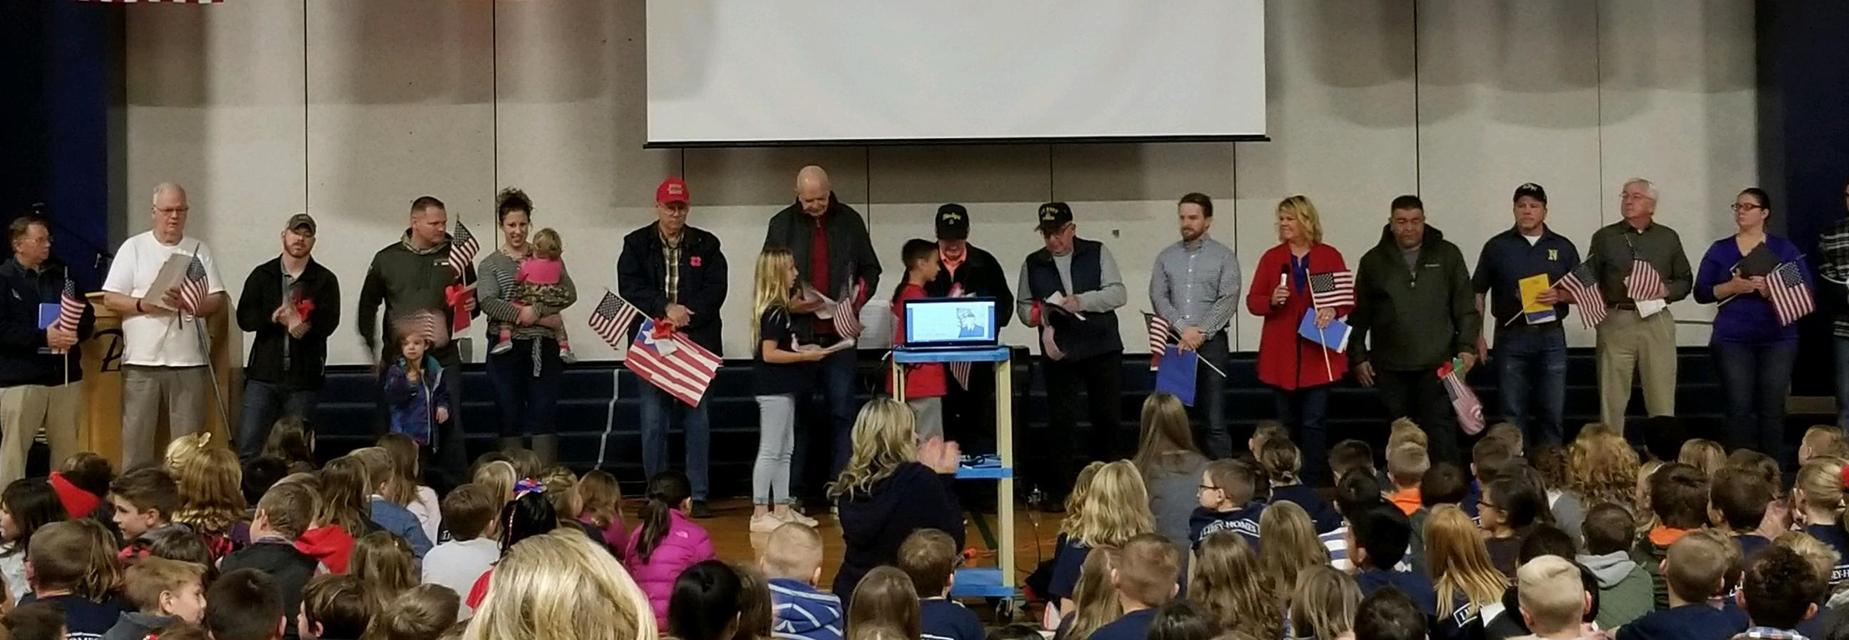 Honoring Veterans with flags, cards, and artwork at our annual assembly